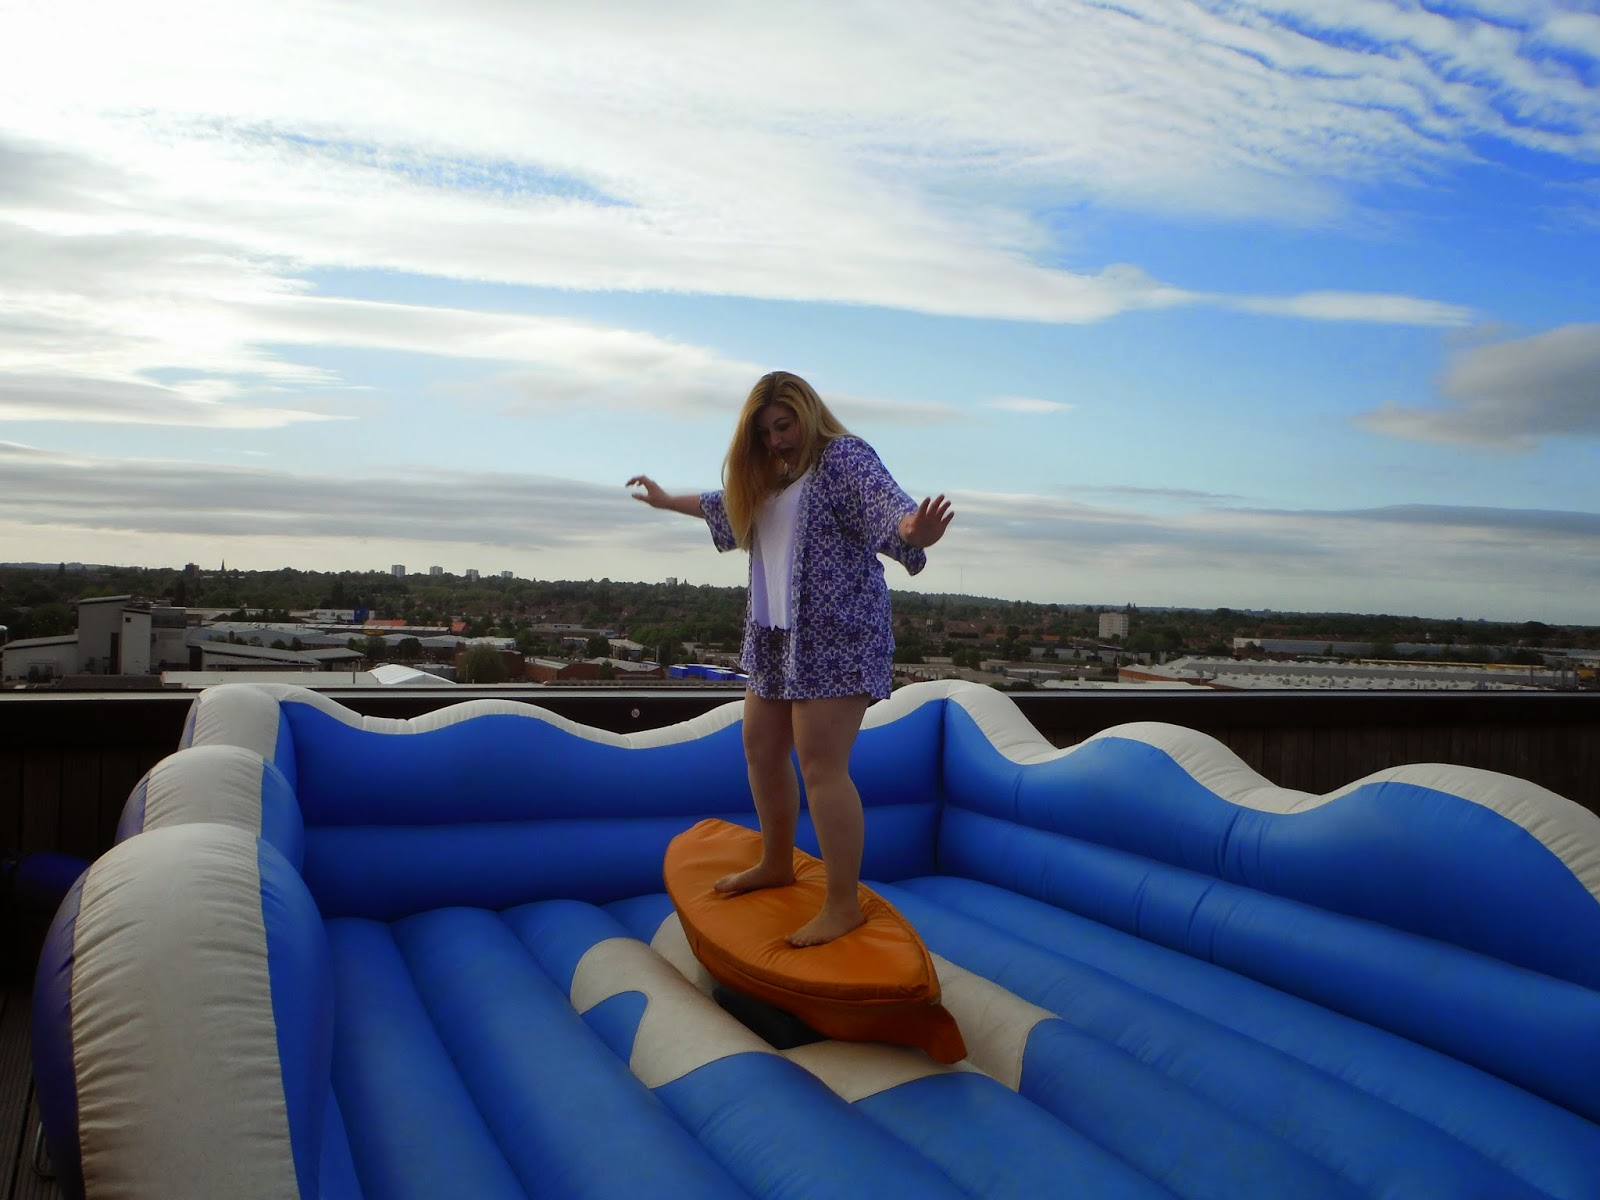 myself standing on the surfboard ride moments before I fell off